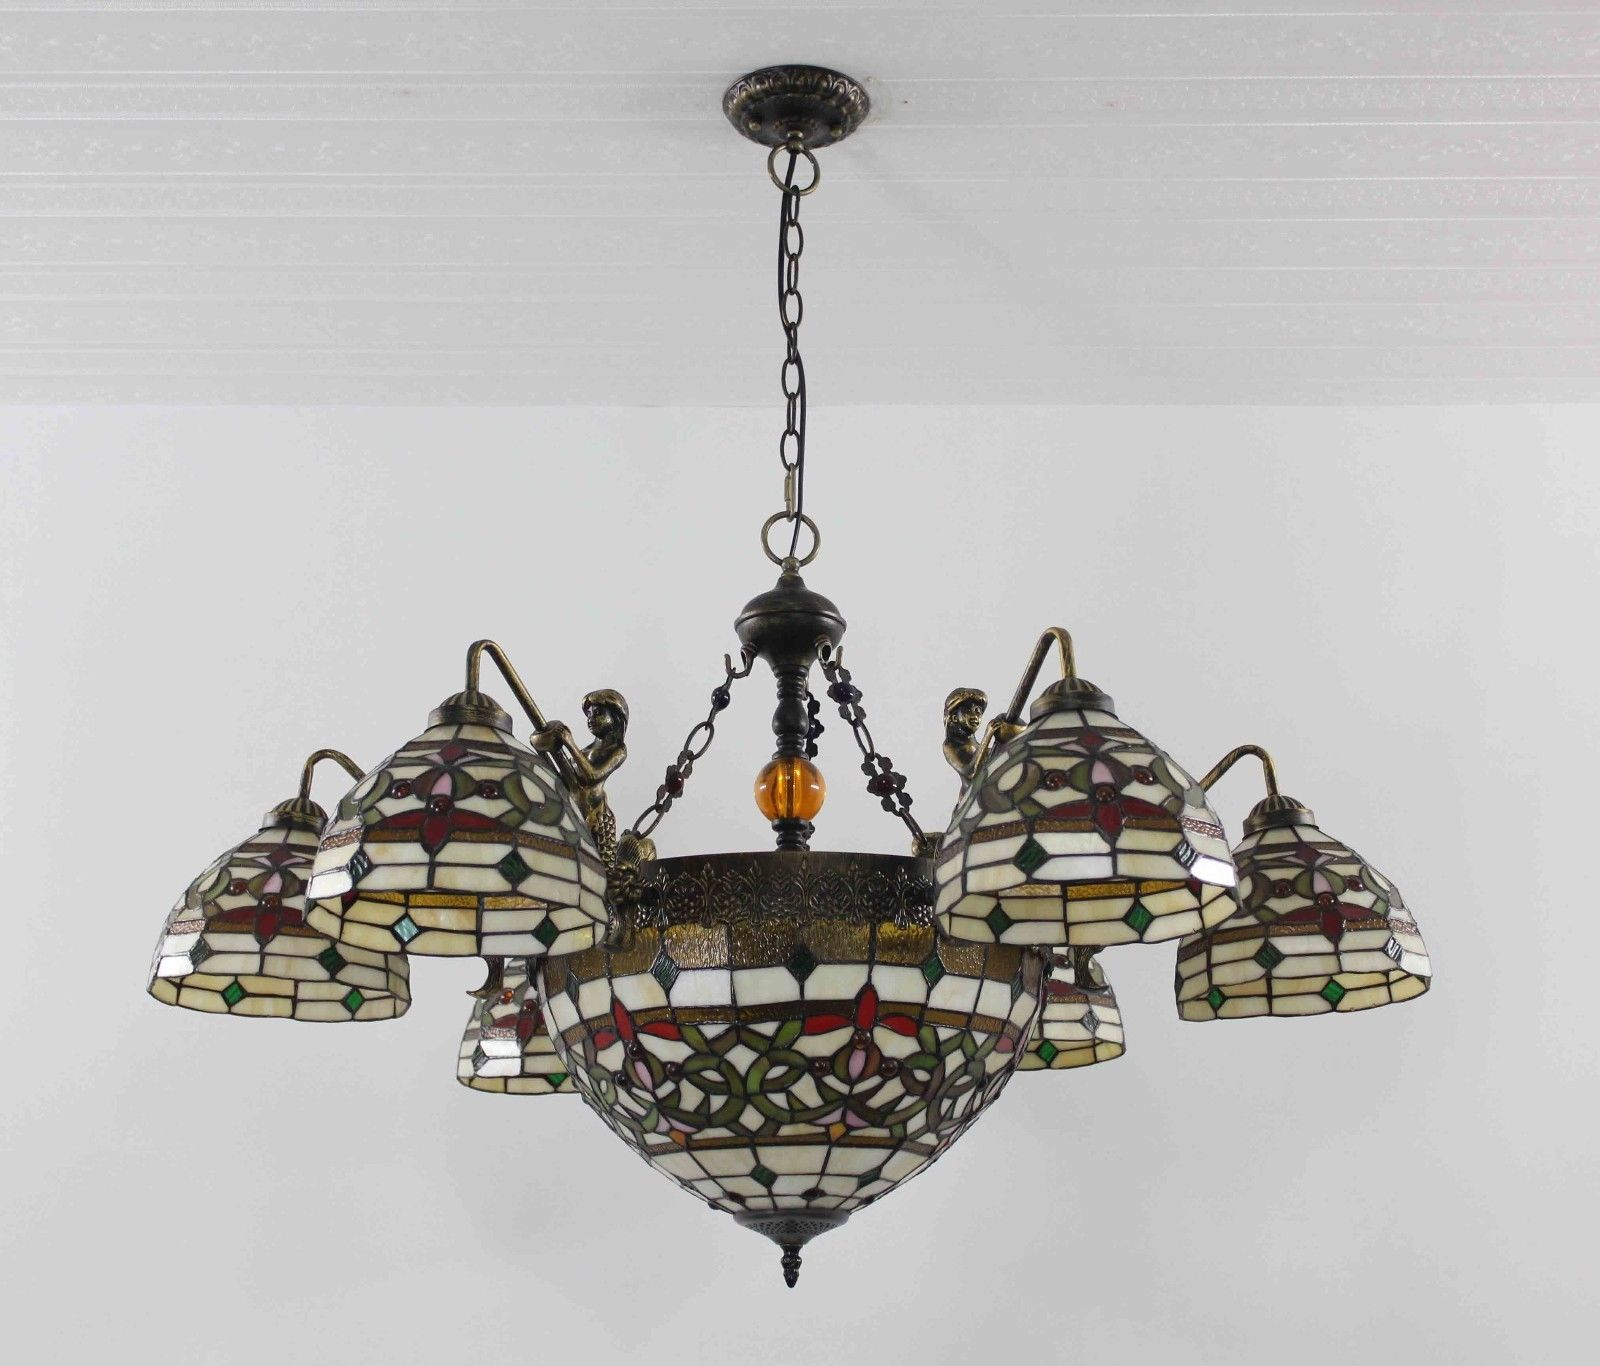 Upscale Lighting Fixtures: Tiffany Chandelier Stained Glass Lamp Ceiling Pendant